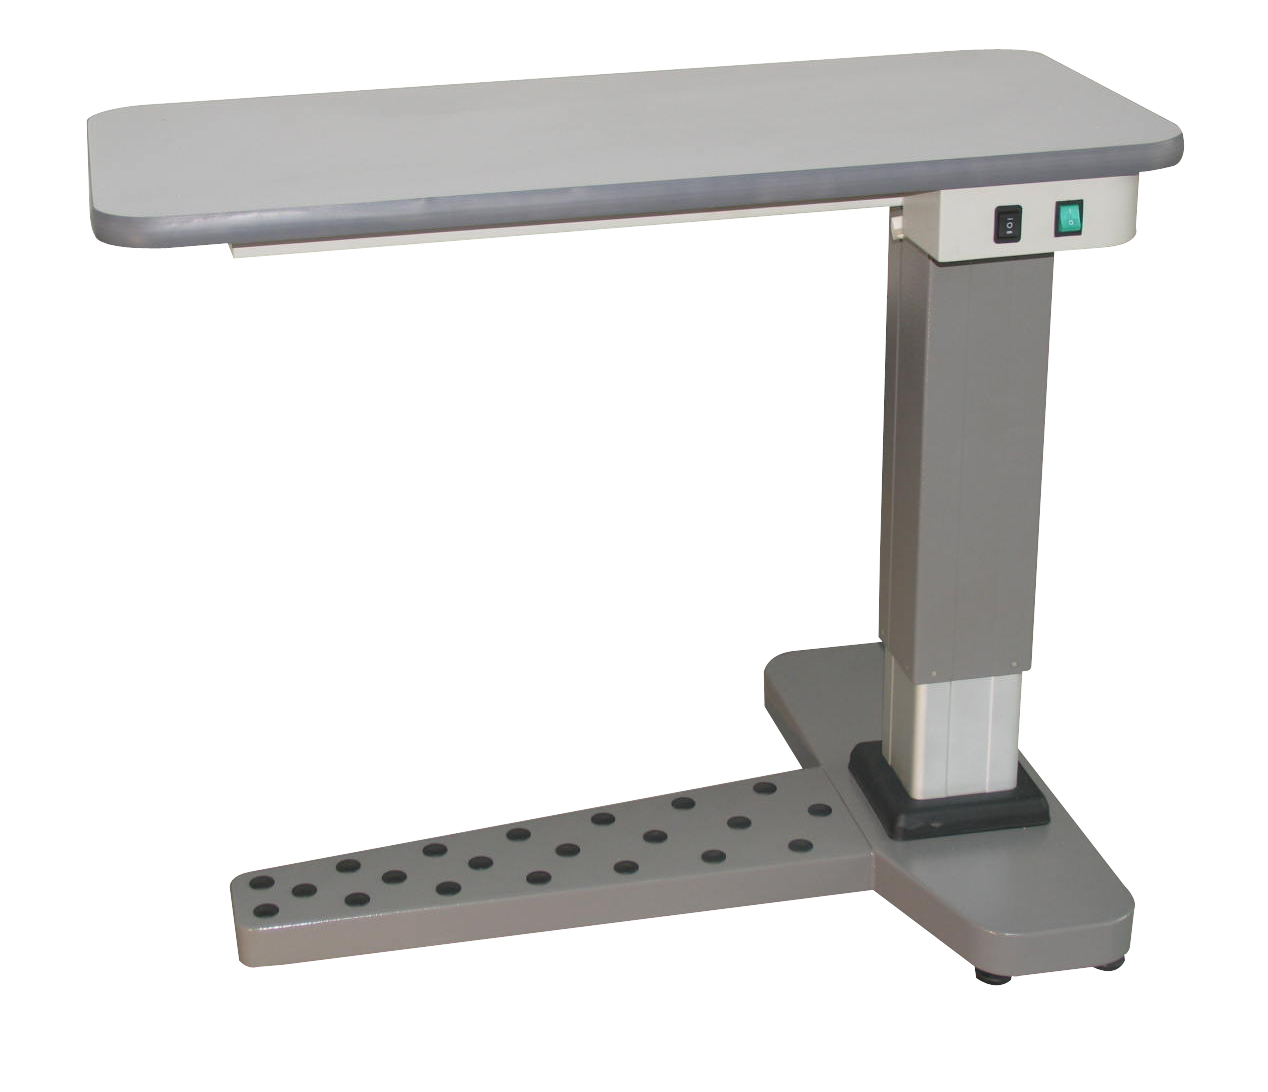 Deluxe Ophthalmic Table Nv 700 New Vision Meditec Co Ltd